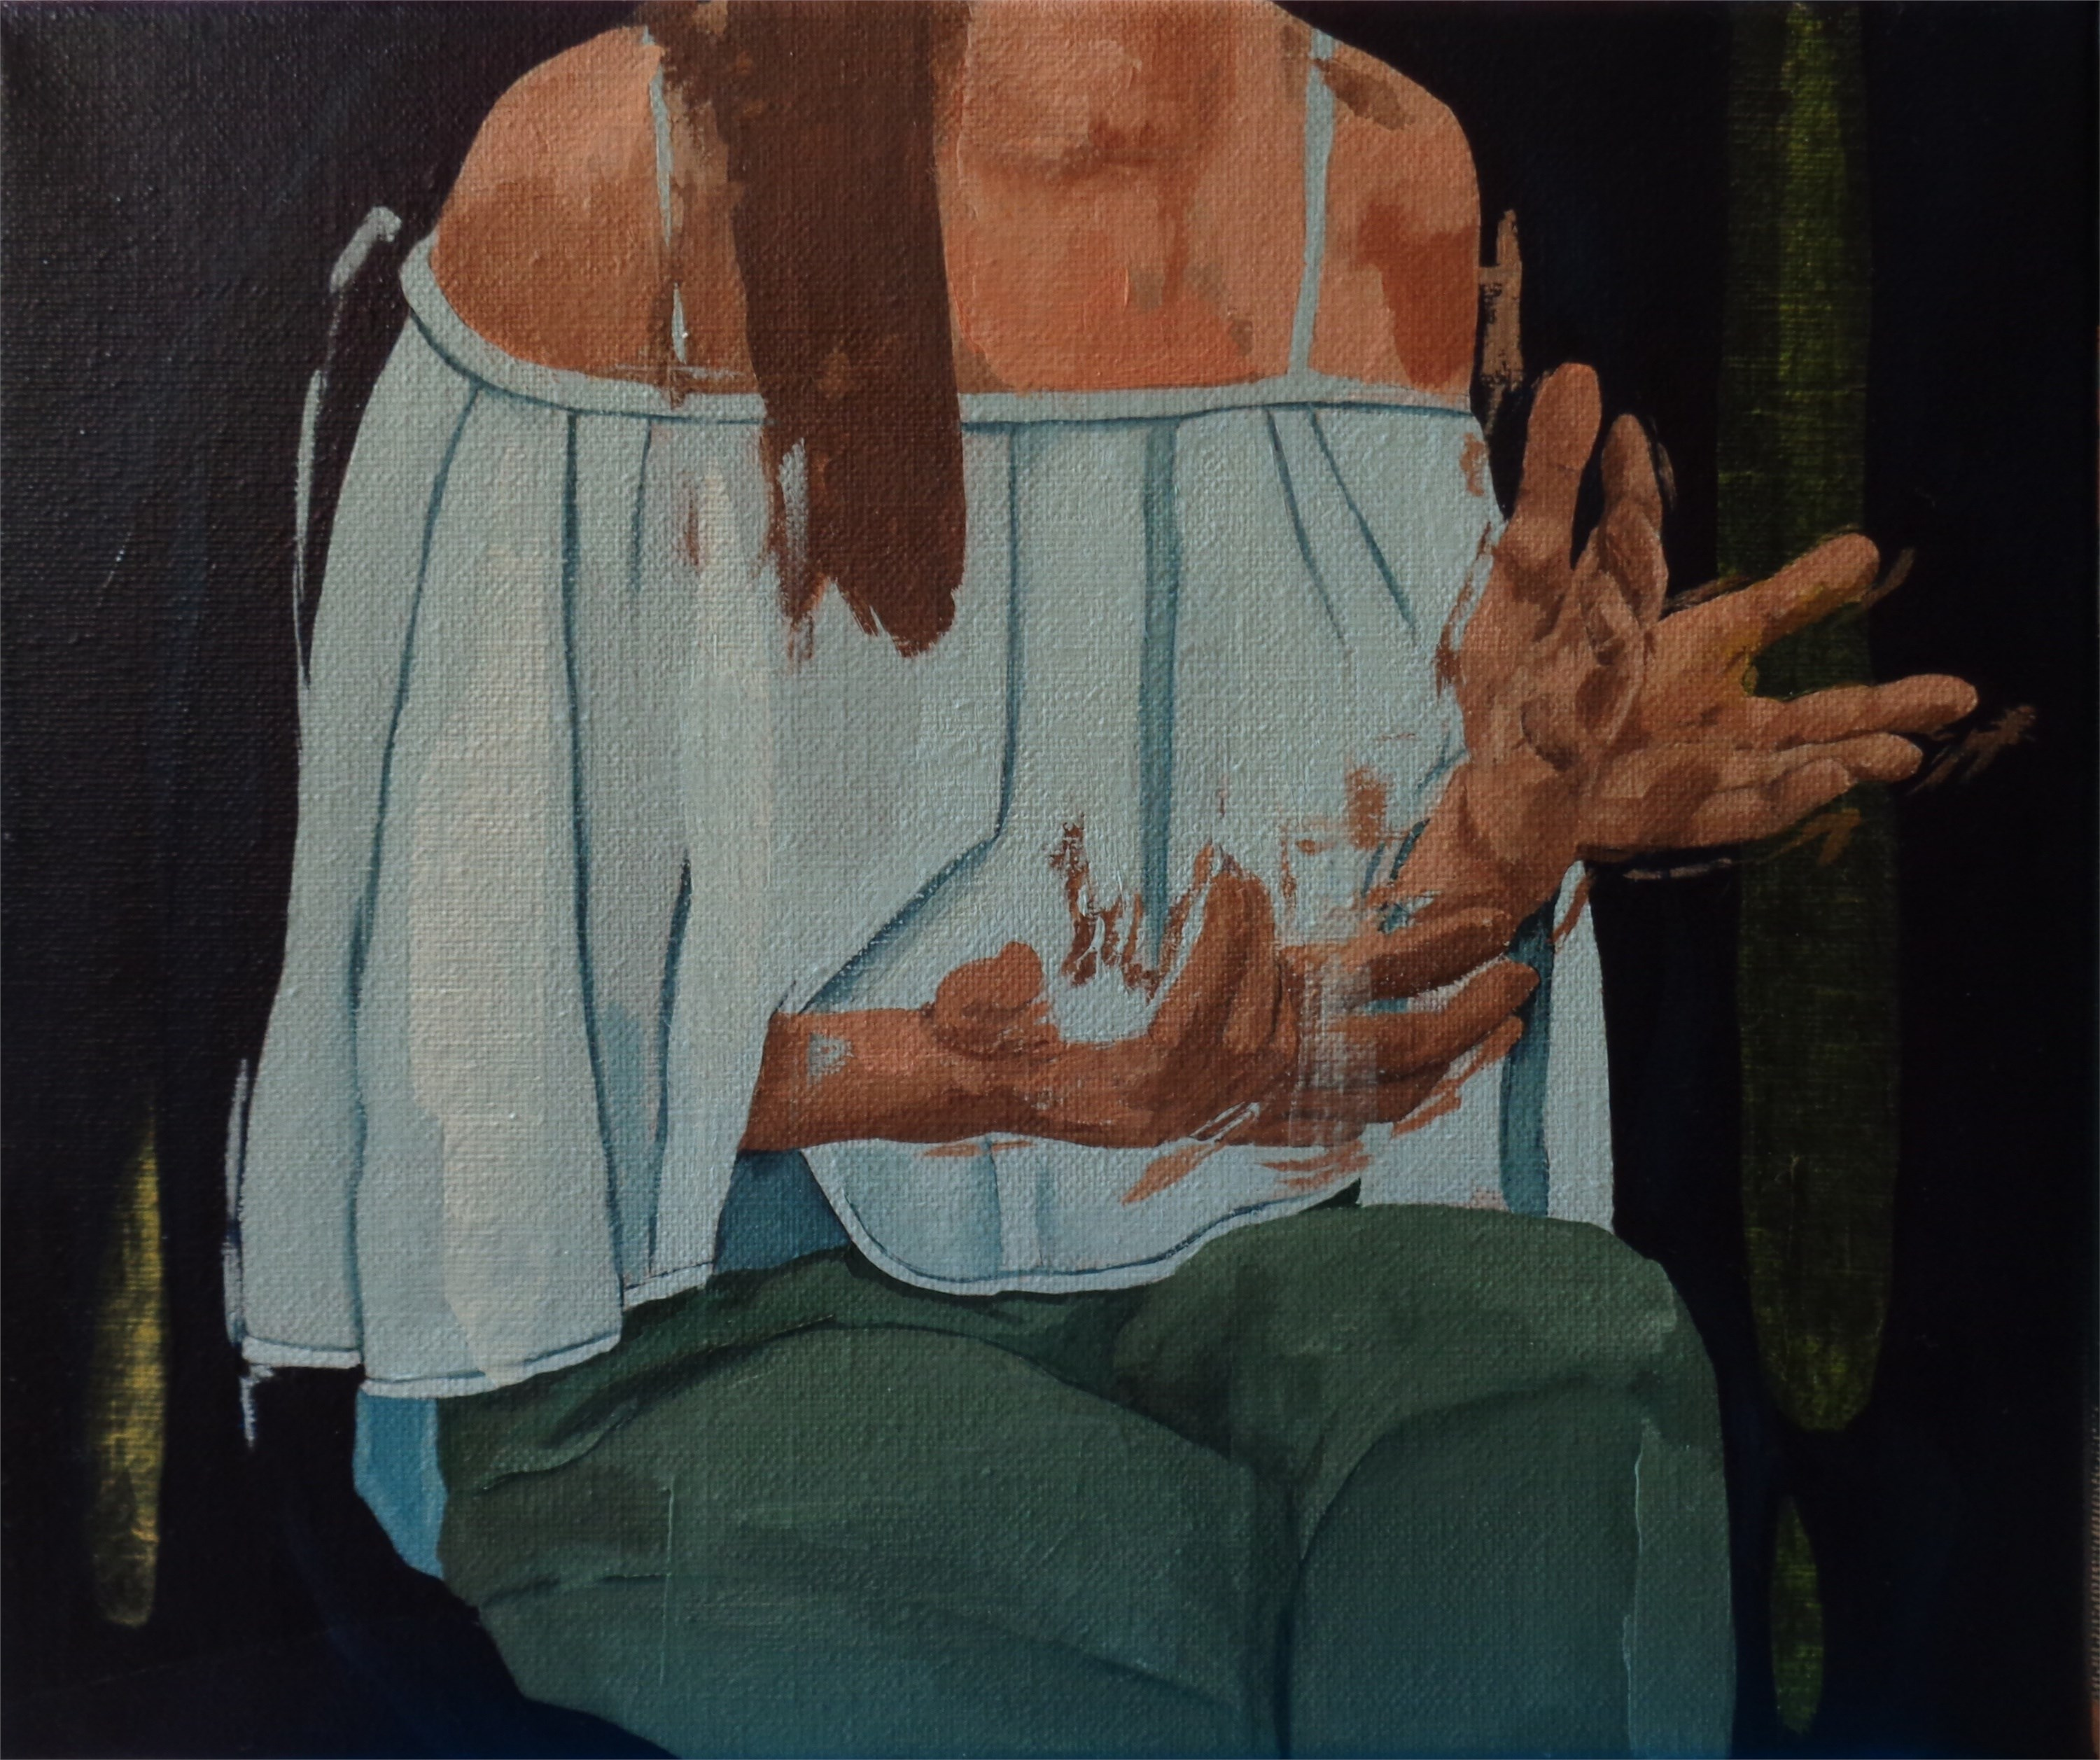 Rita's hands, original Abstract Oil Painting by João Teixeira